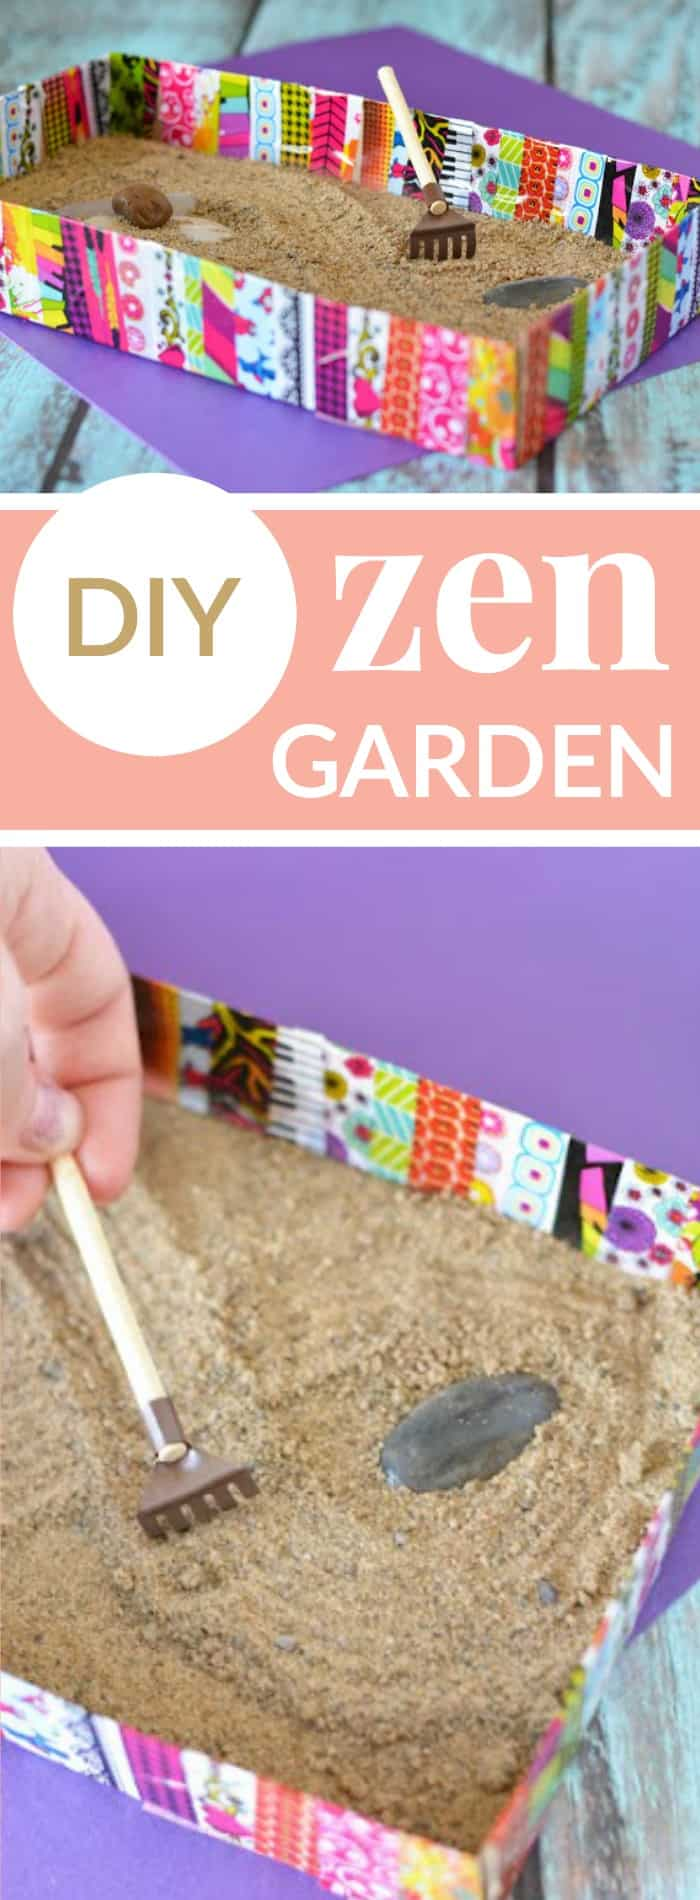 DIY ZEN GARDEN HELPS ADULTS AND KIDS RELAX Mommy Moment